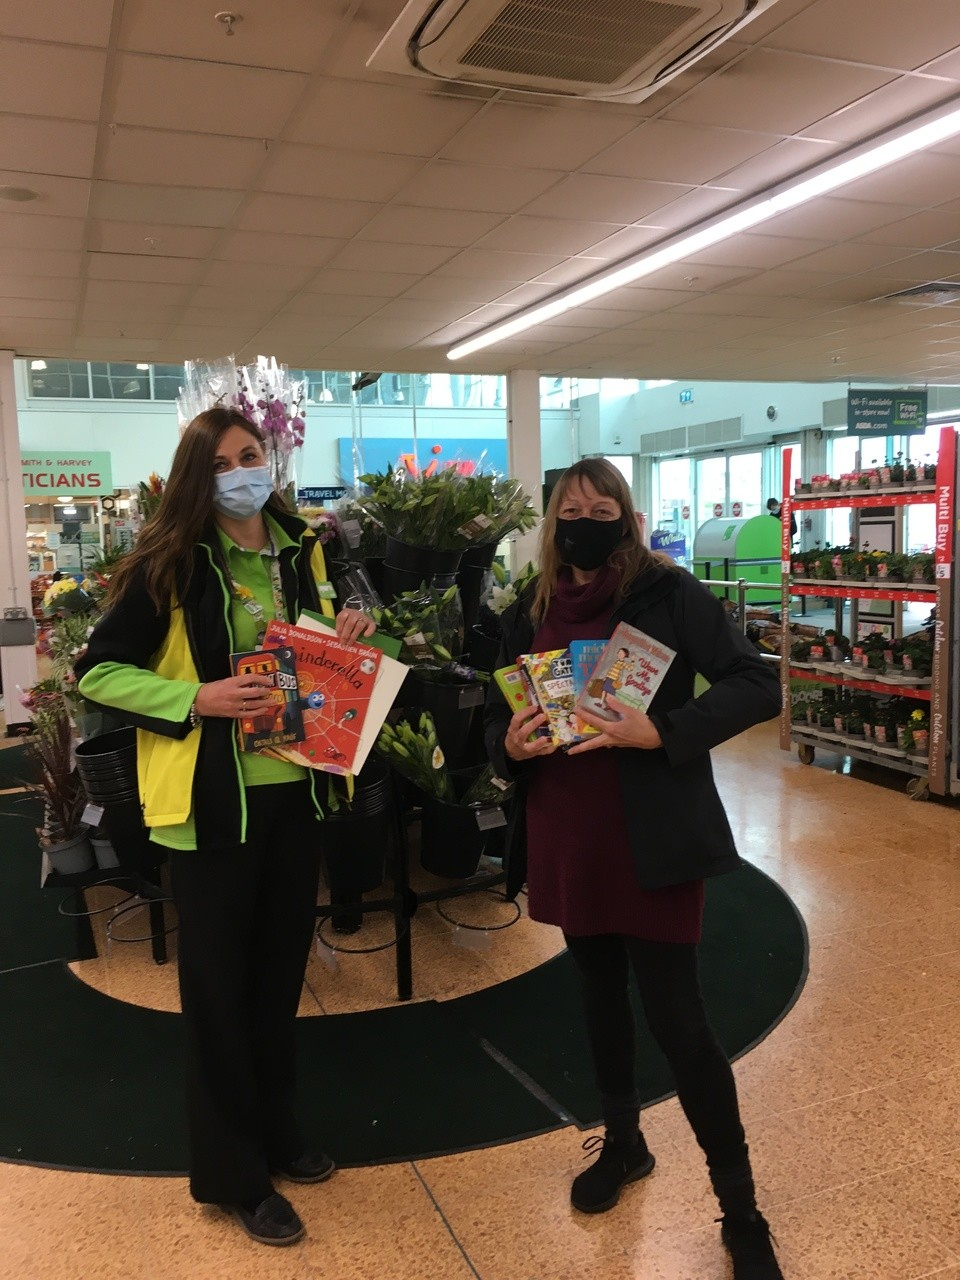 Book donations for Christ church Primary school | Asda Longwell Green